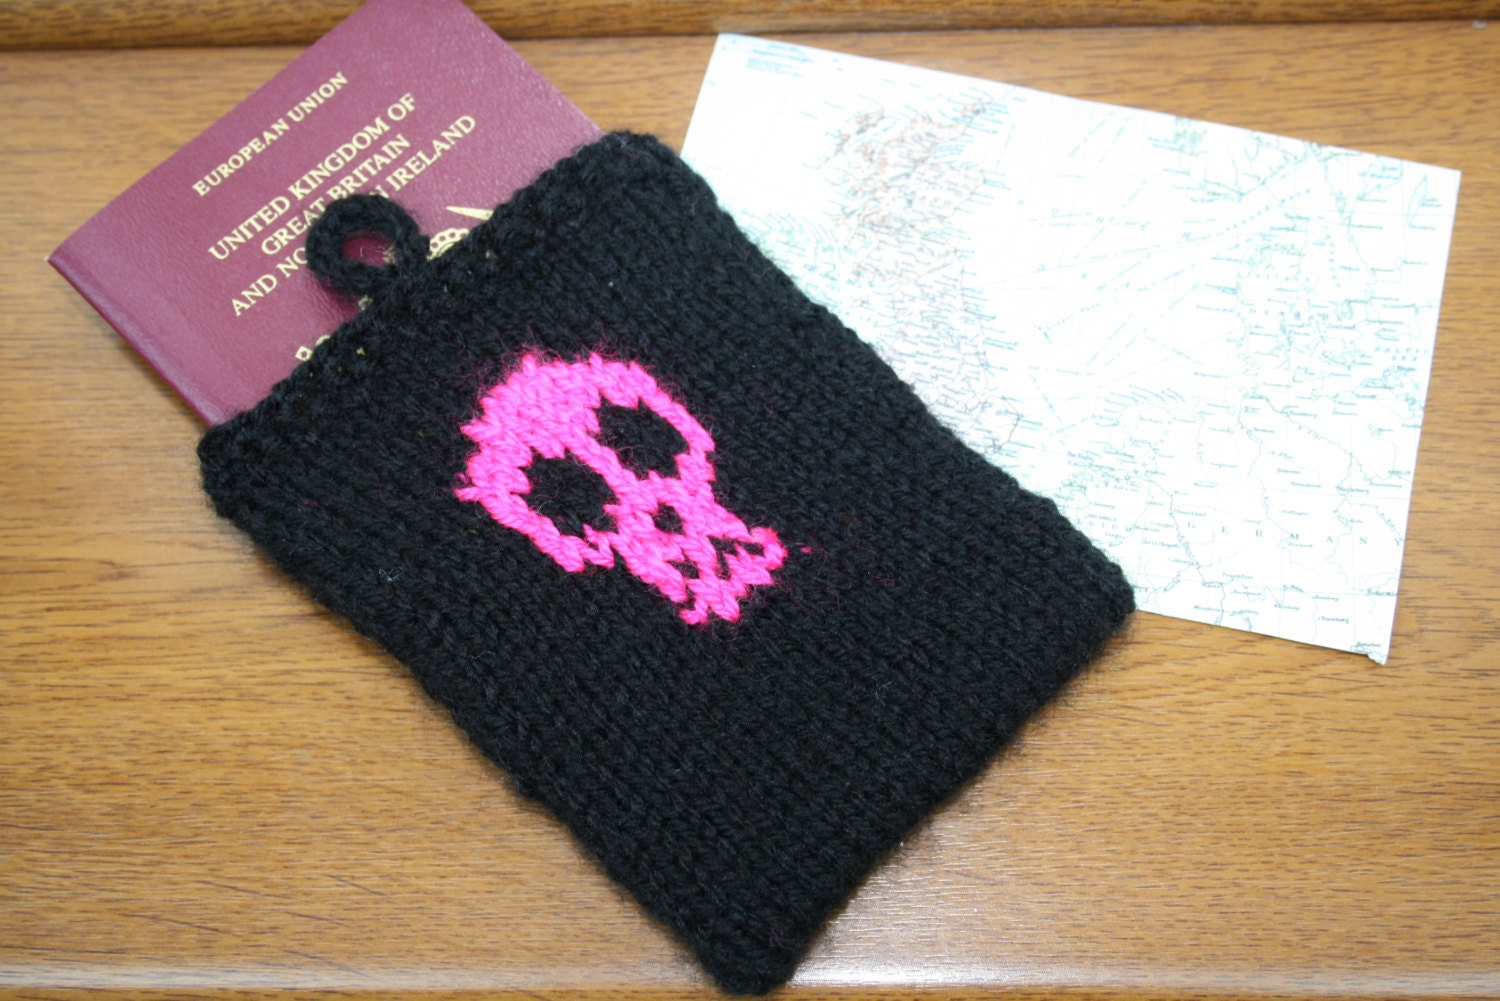 Hand Knitted Neon Pink and Black Skull Passport Cover  One Size  Passport Cover  Gifts for Her  Stocking Stuffers  Travel Gifts